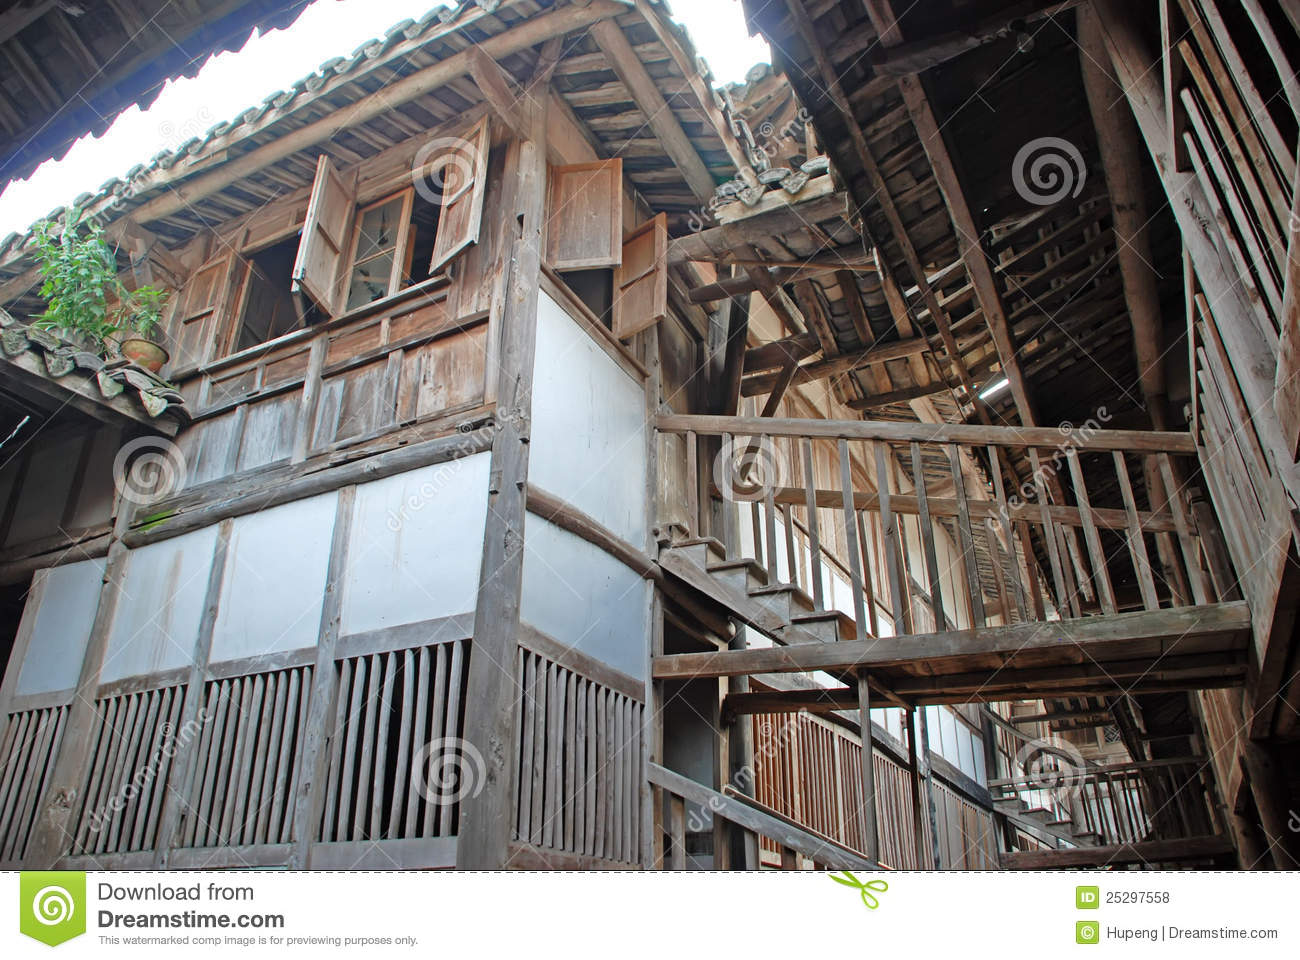 Ancient Wooden House In China Royalty Free Stock Photos - Image: 25297558